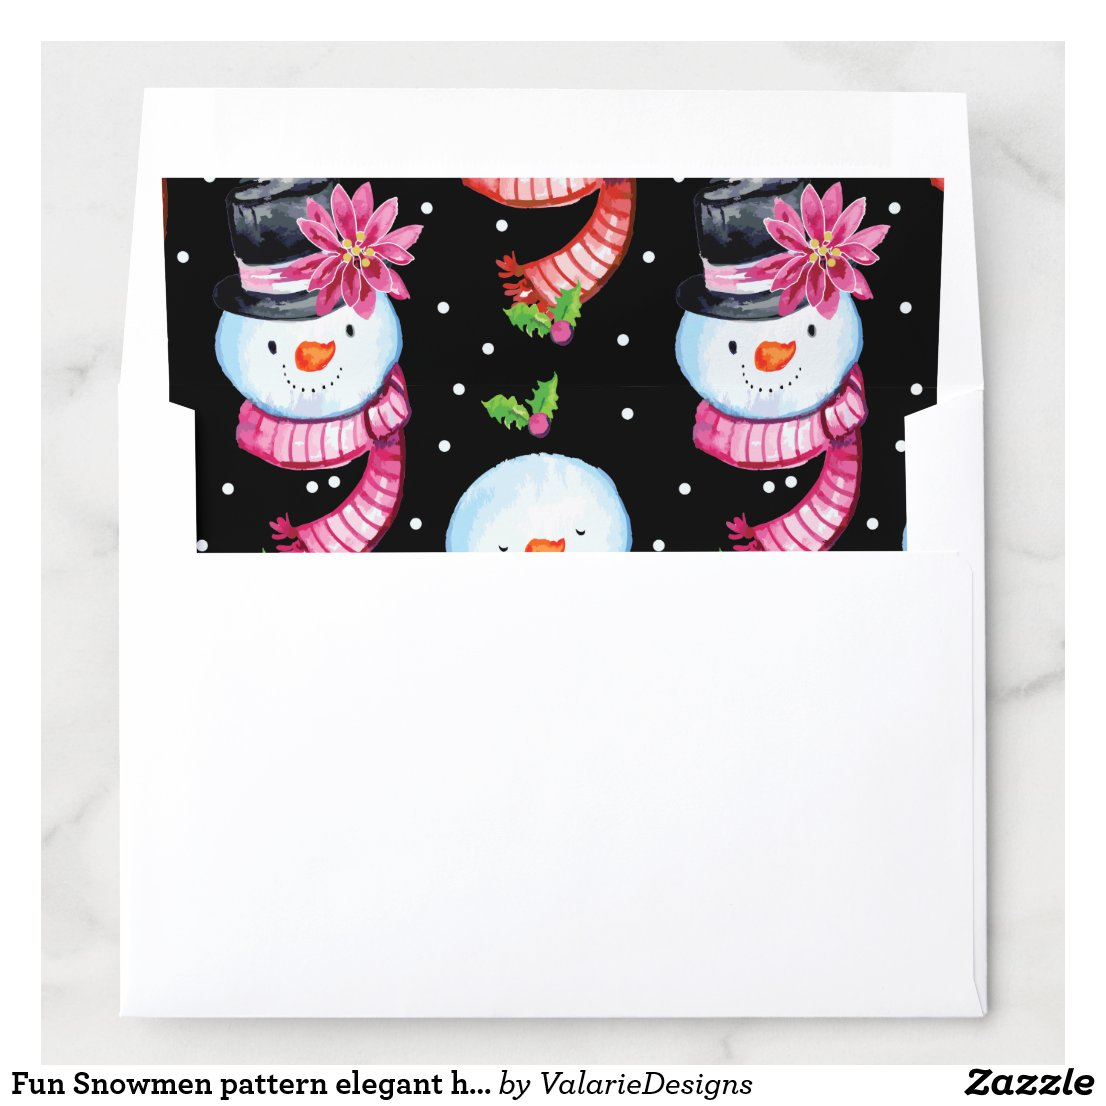 Fun Snowmen pattern elegant holiday